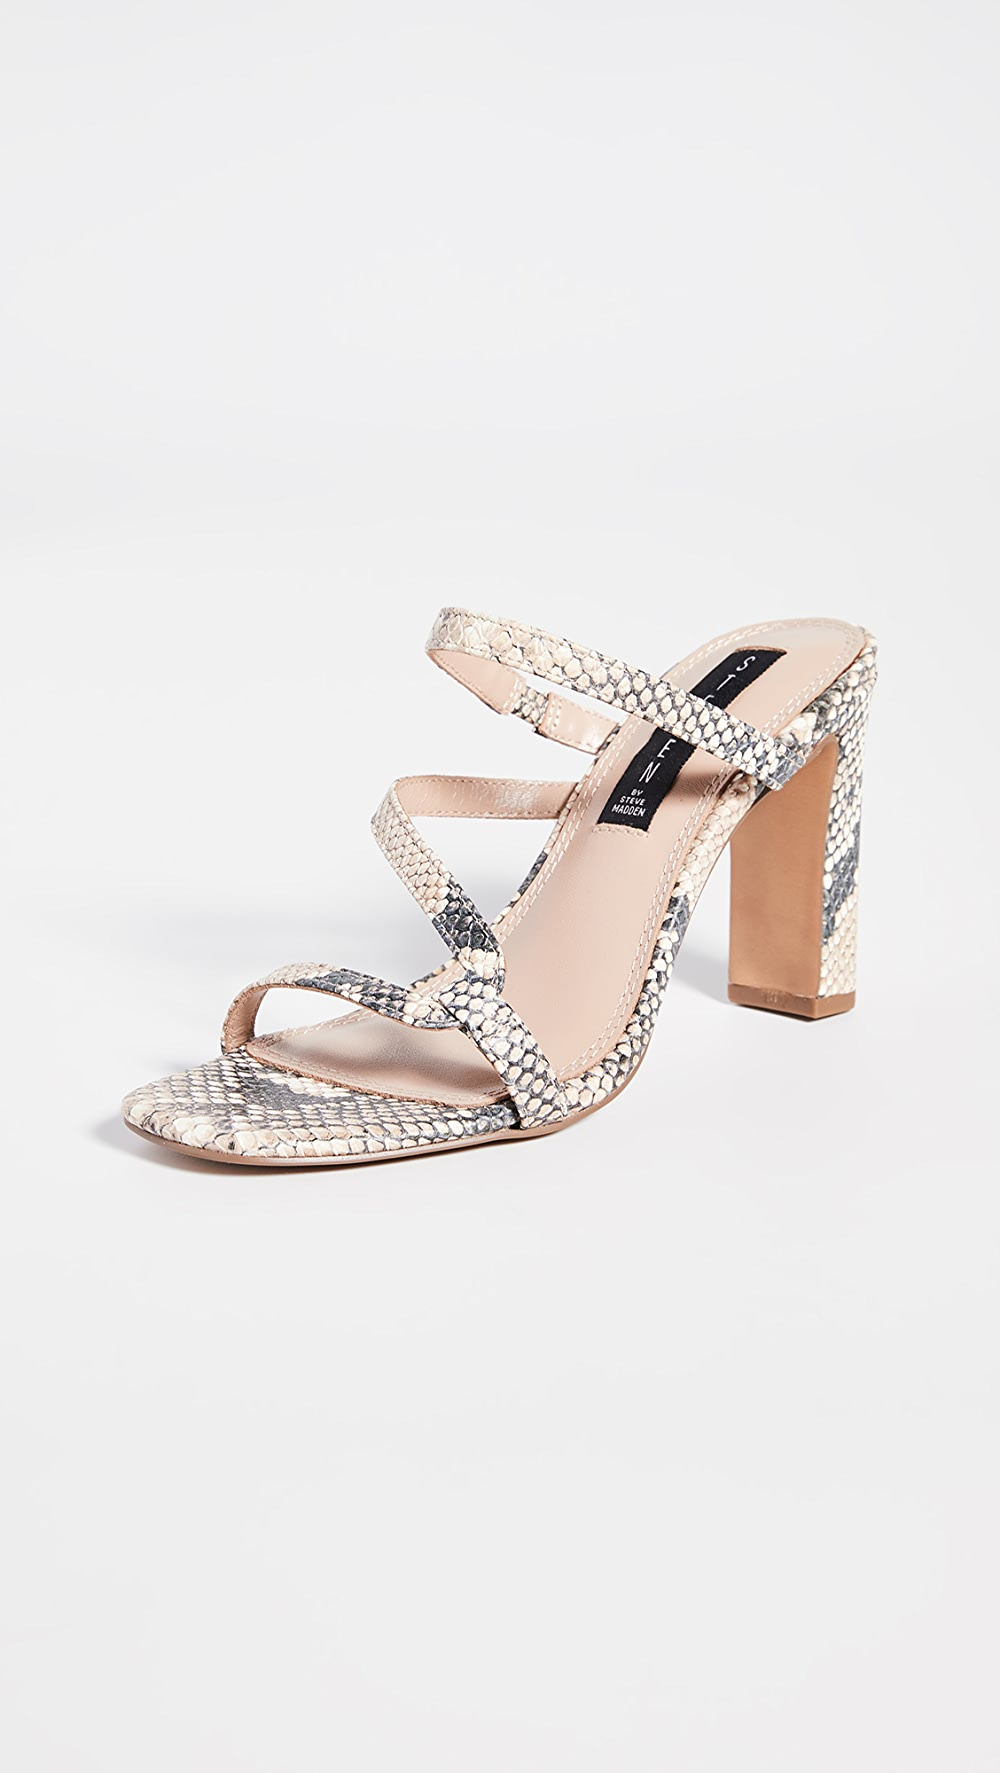 Cheap Price Steven - Jerri Slides Cheapest Price From Our Site